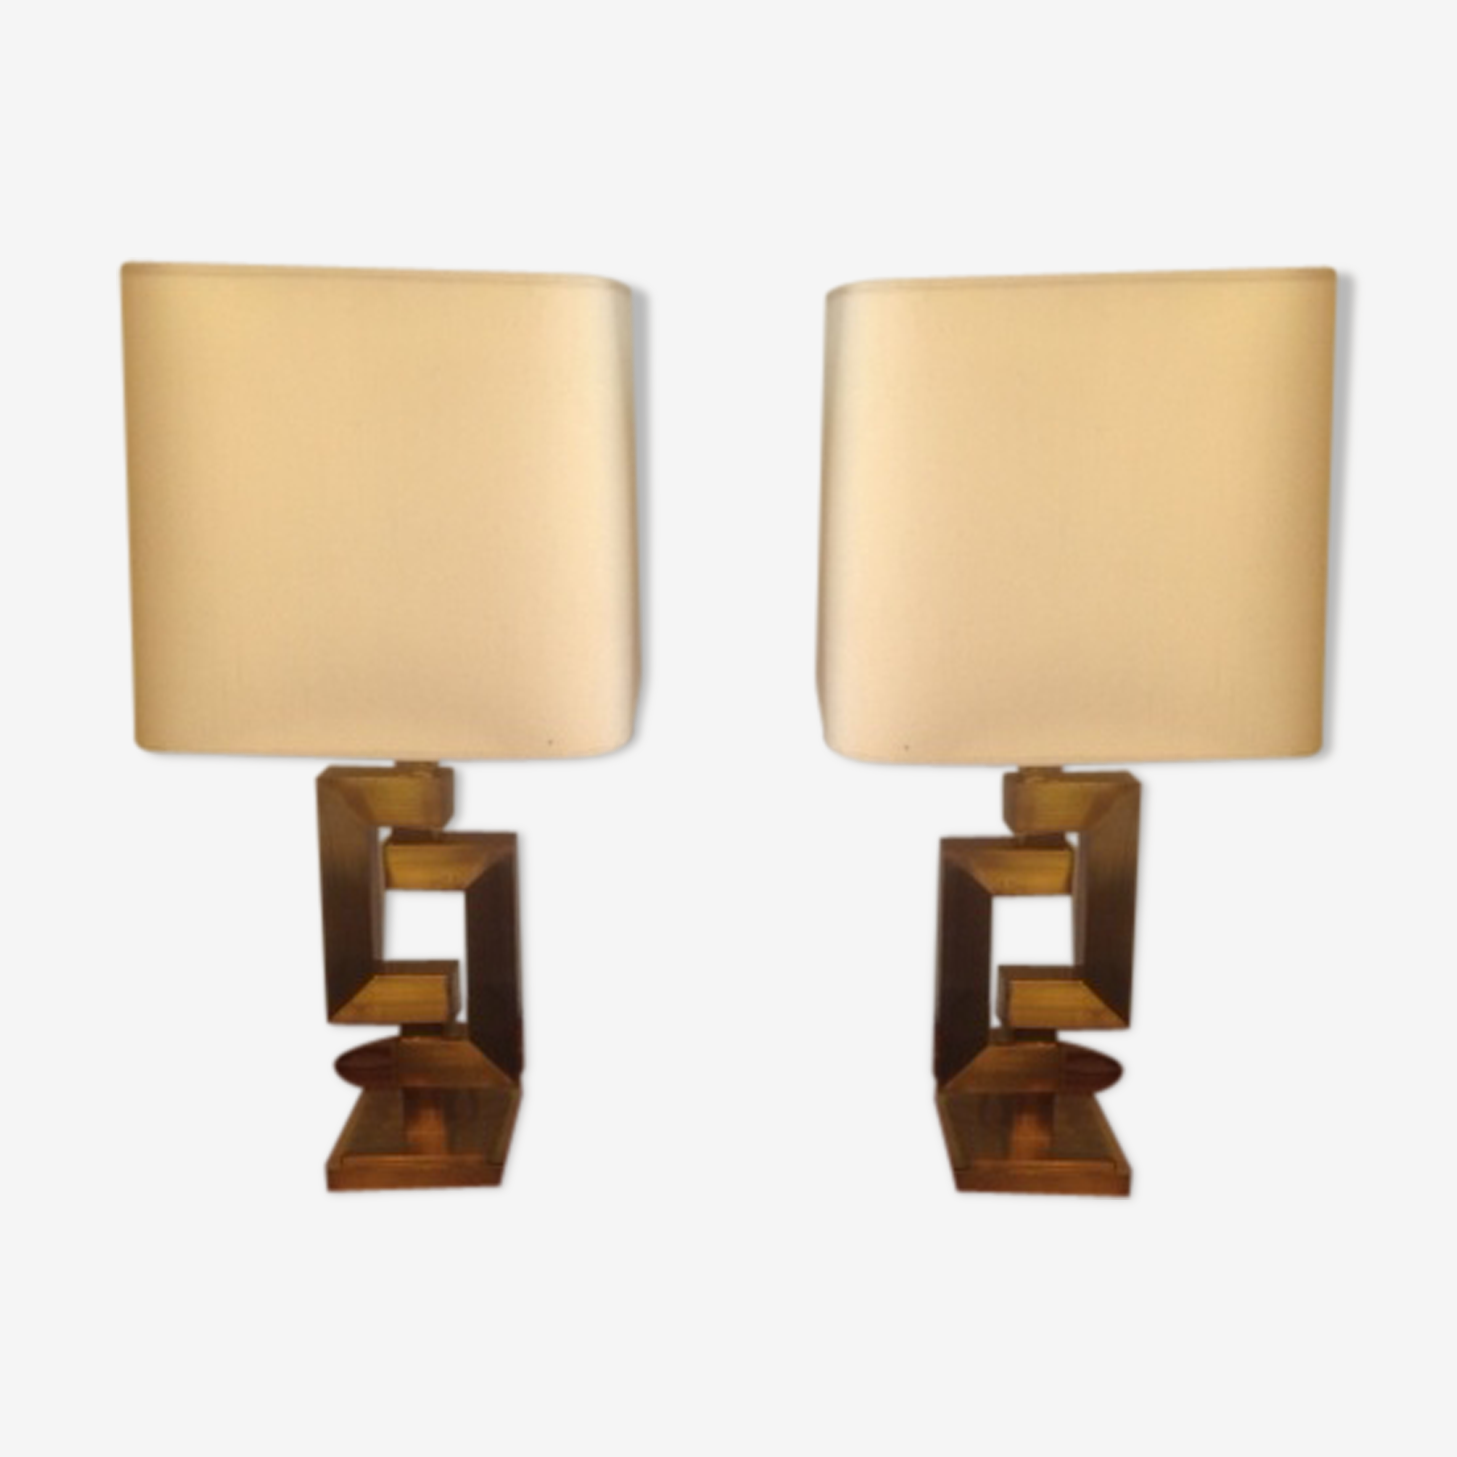 Pair of geometric brass lamps